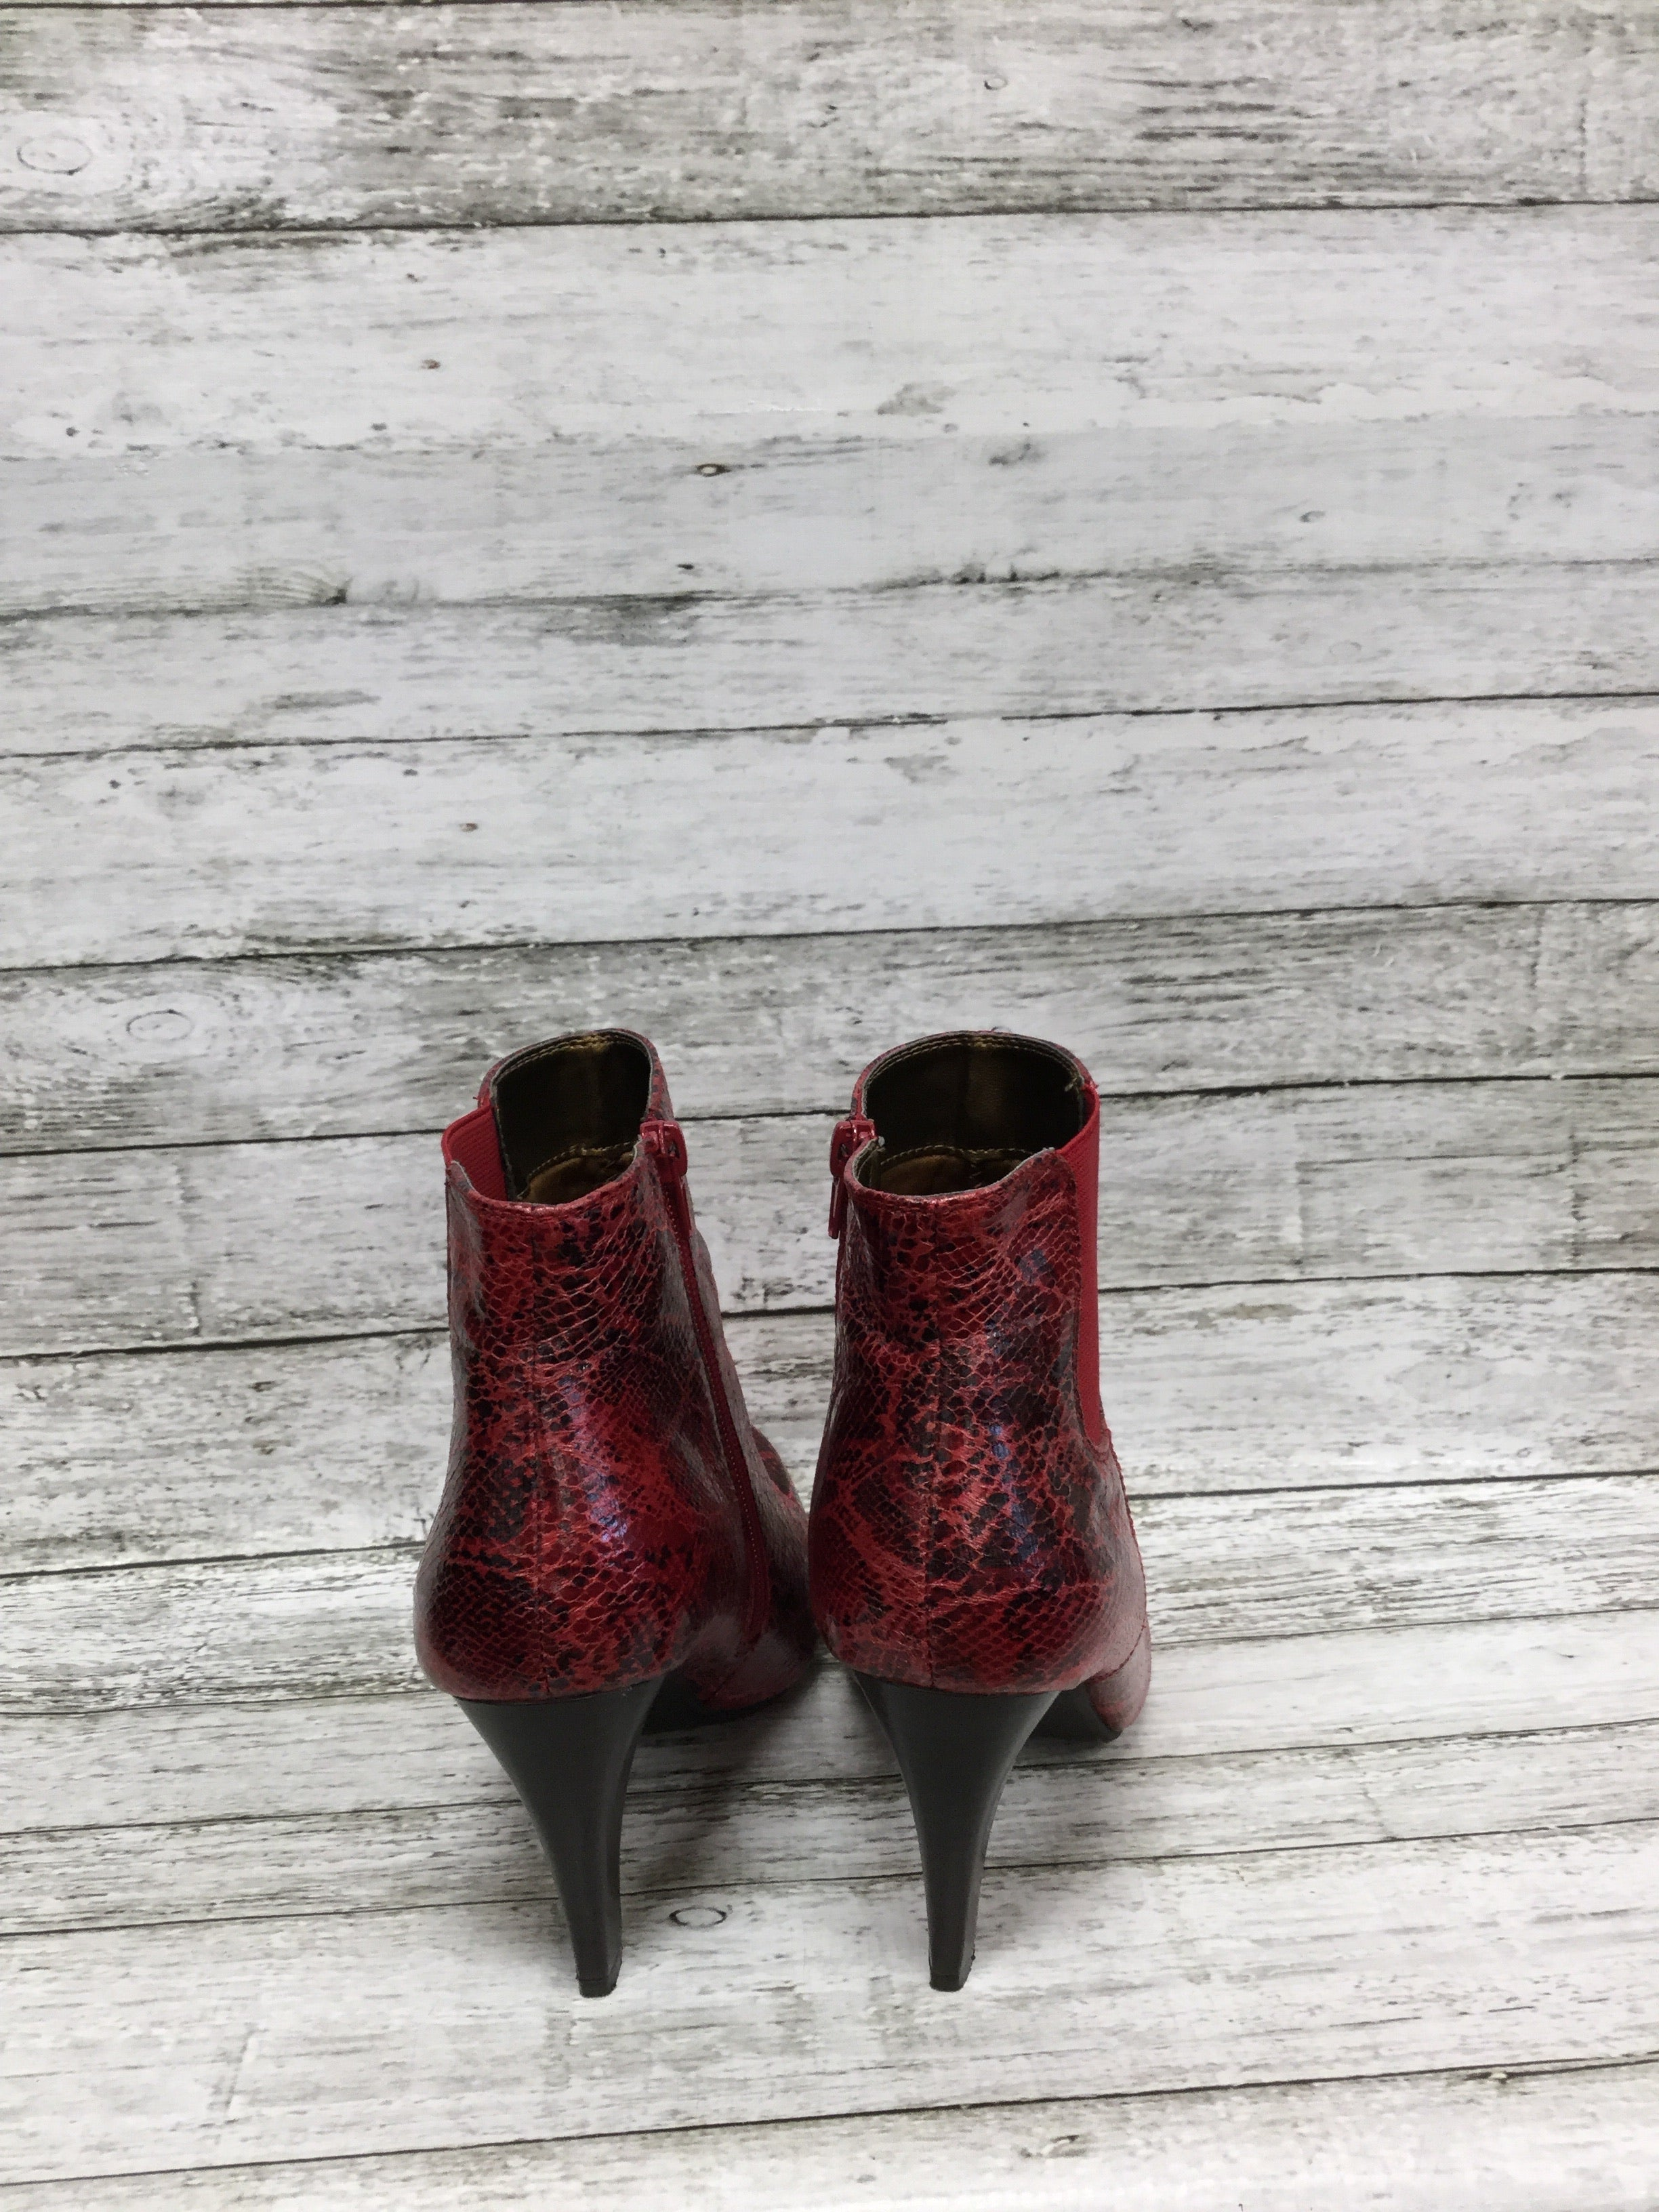 Photo #3 - BRAND: RIALTO , STYLE: BOOTS ANKLE , COLOR: RED , SIZE: 8.5 , SKU: 127-4876-8622, , RED SNAKESKIN HEELED BOOTIES!